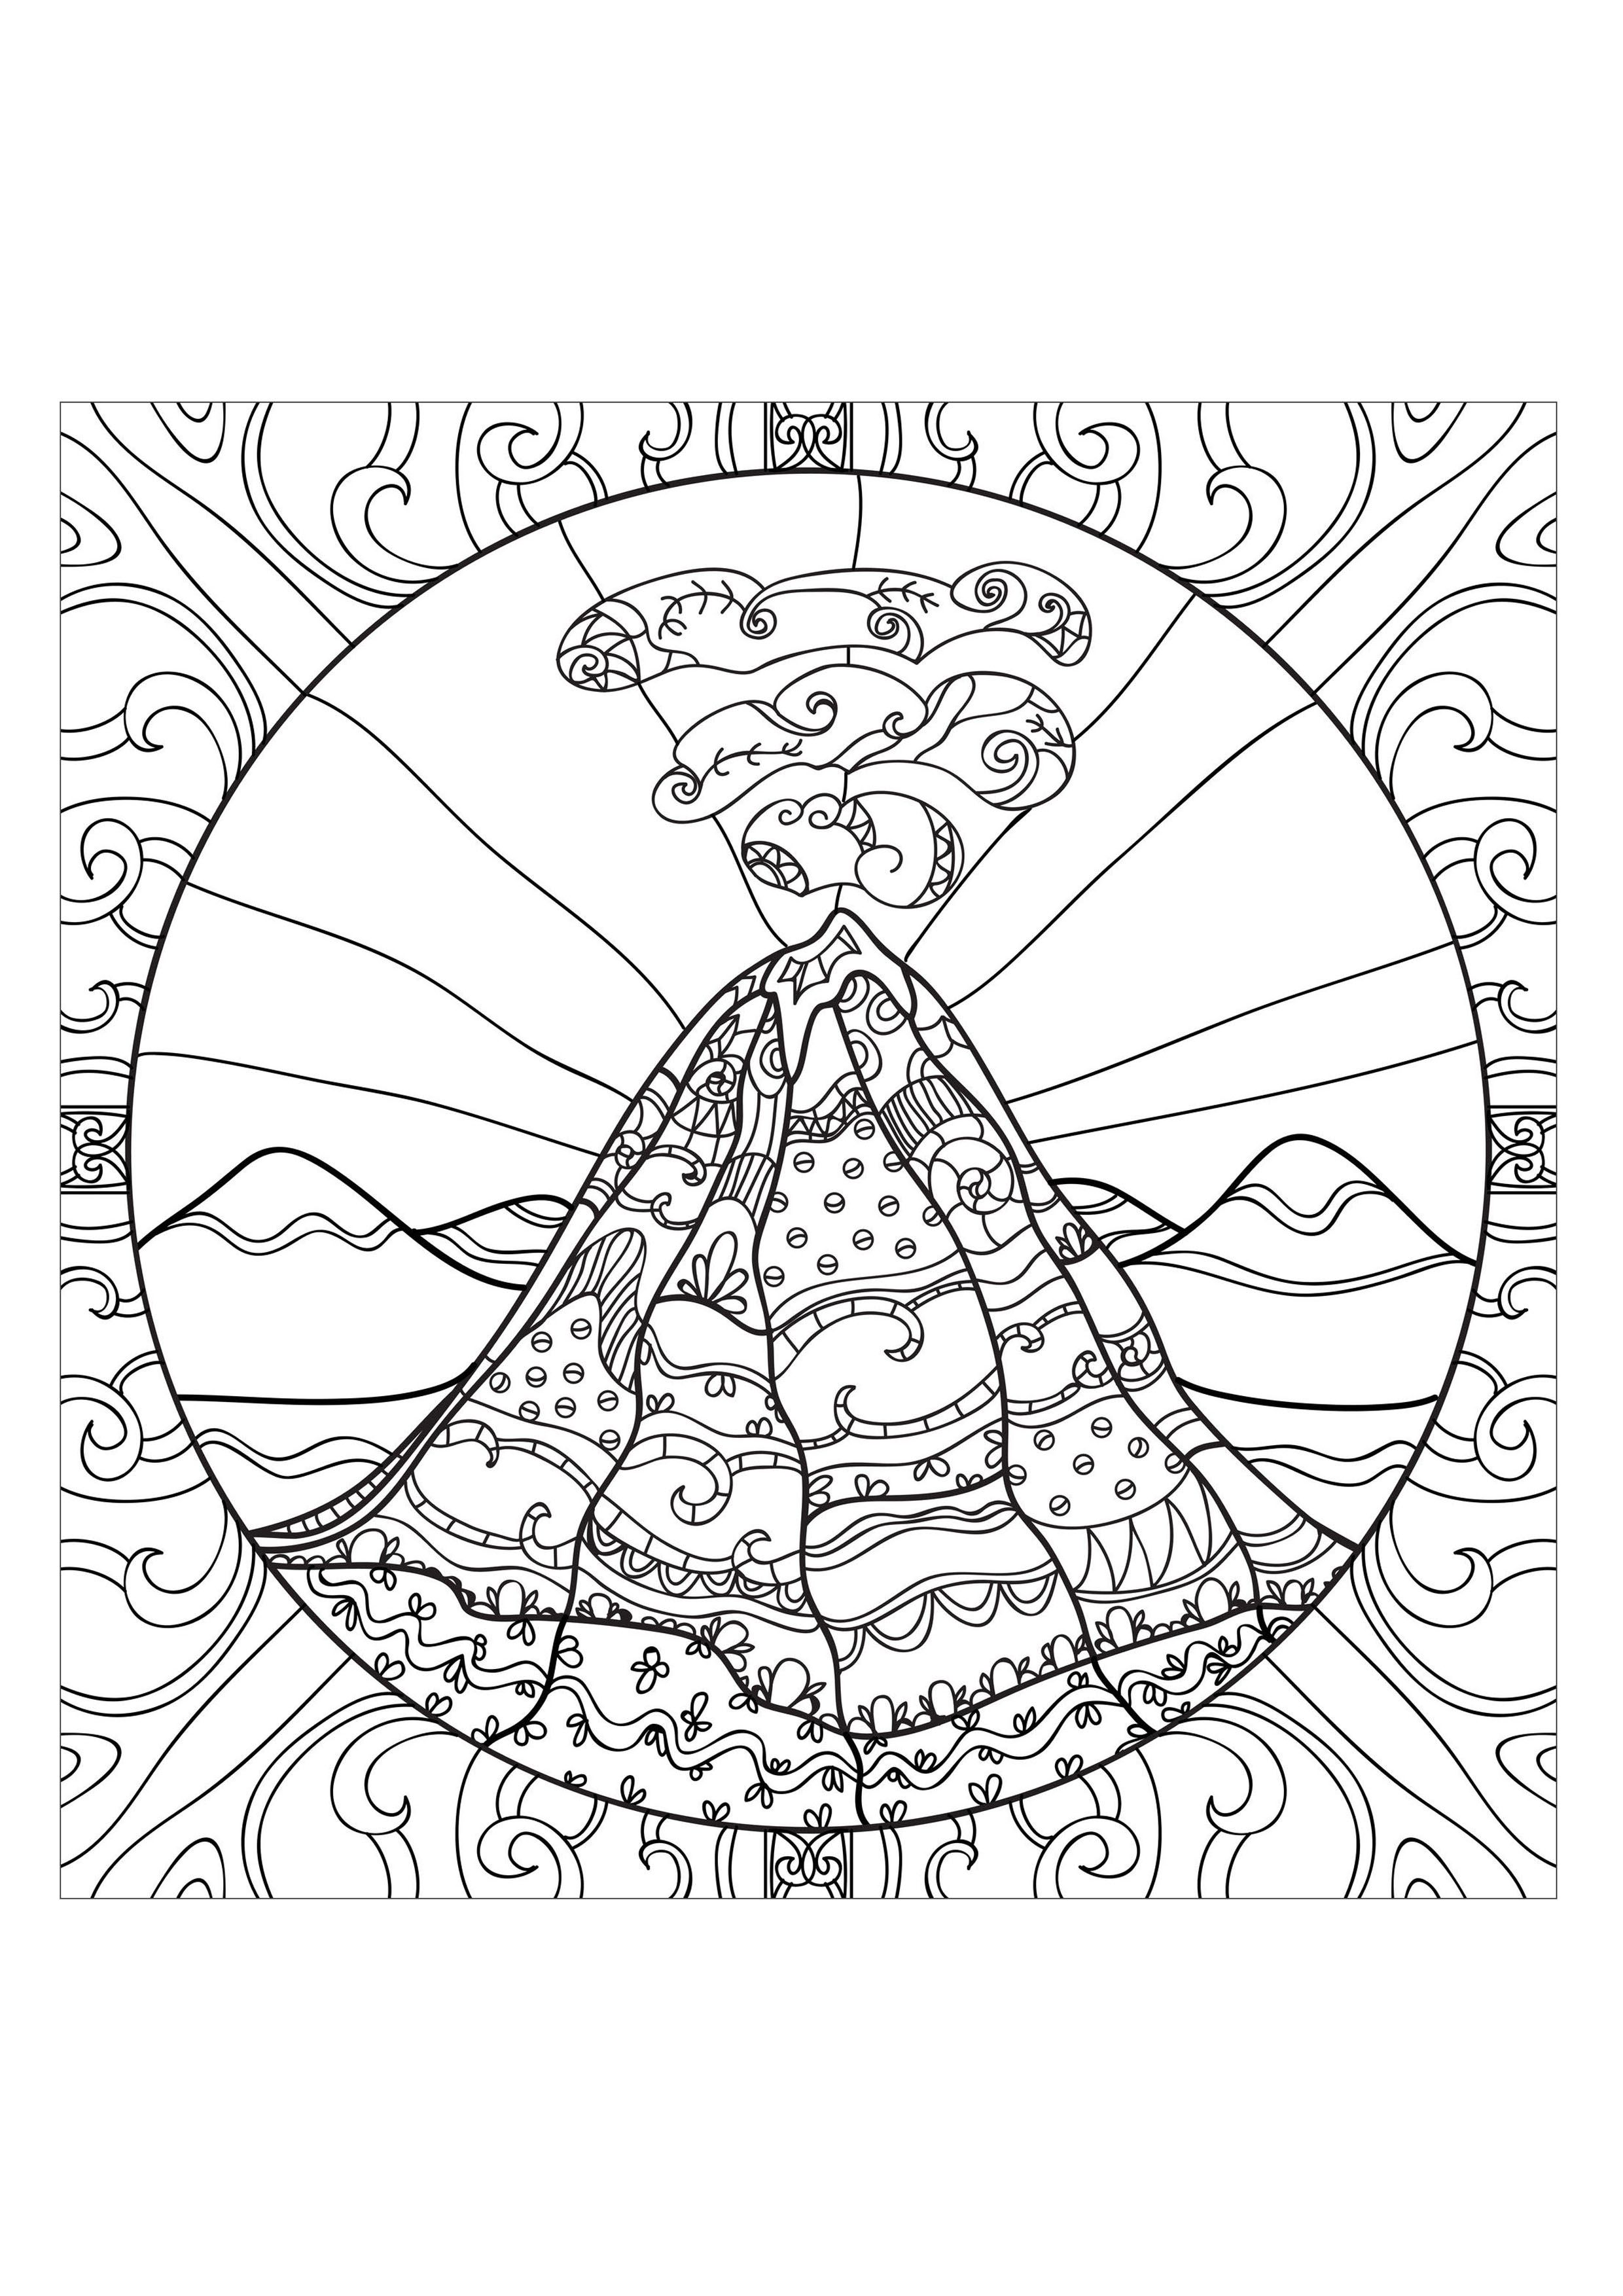 Pin von Adelina Go auf Coloring pages